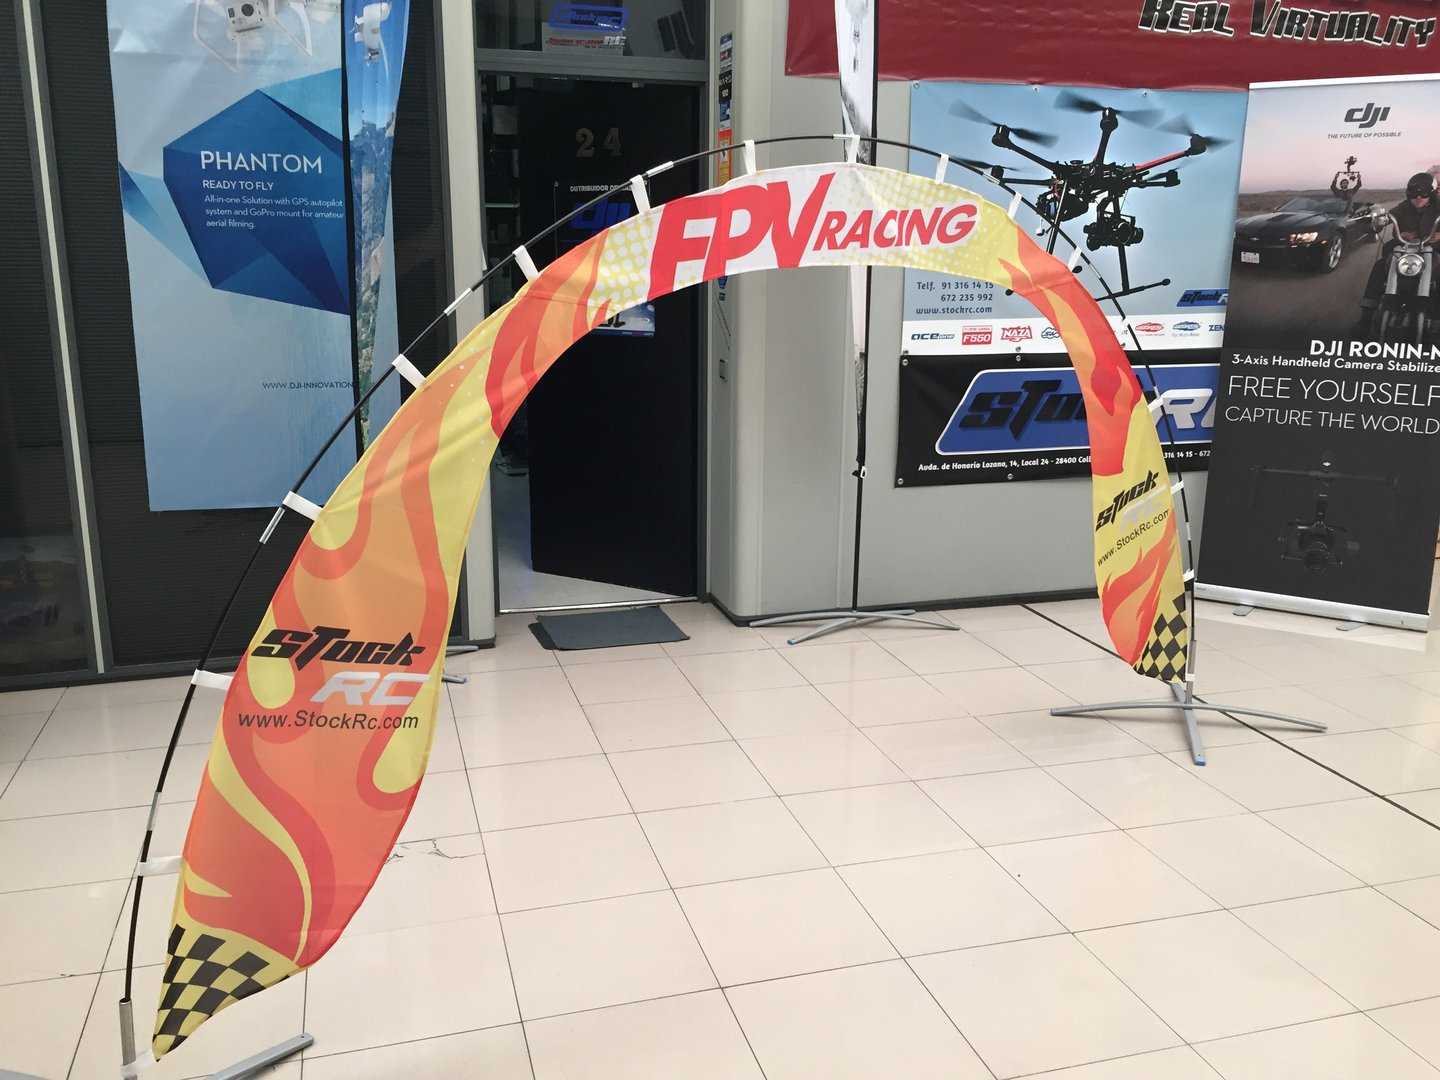 fpv racing air gate dji store madrid amp support center